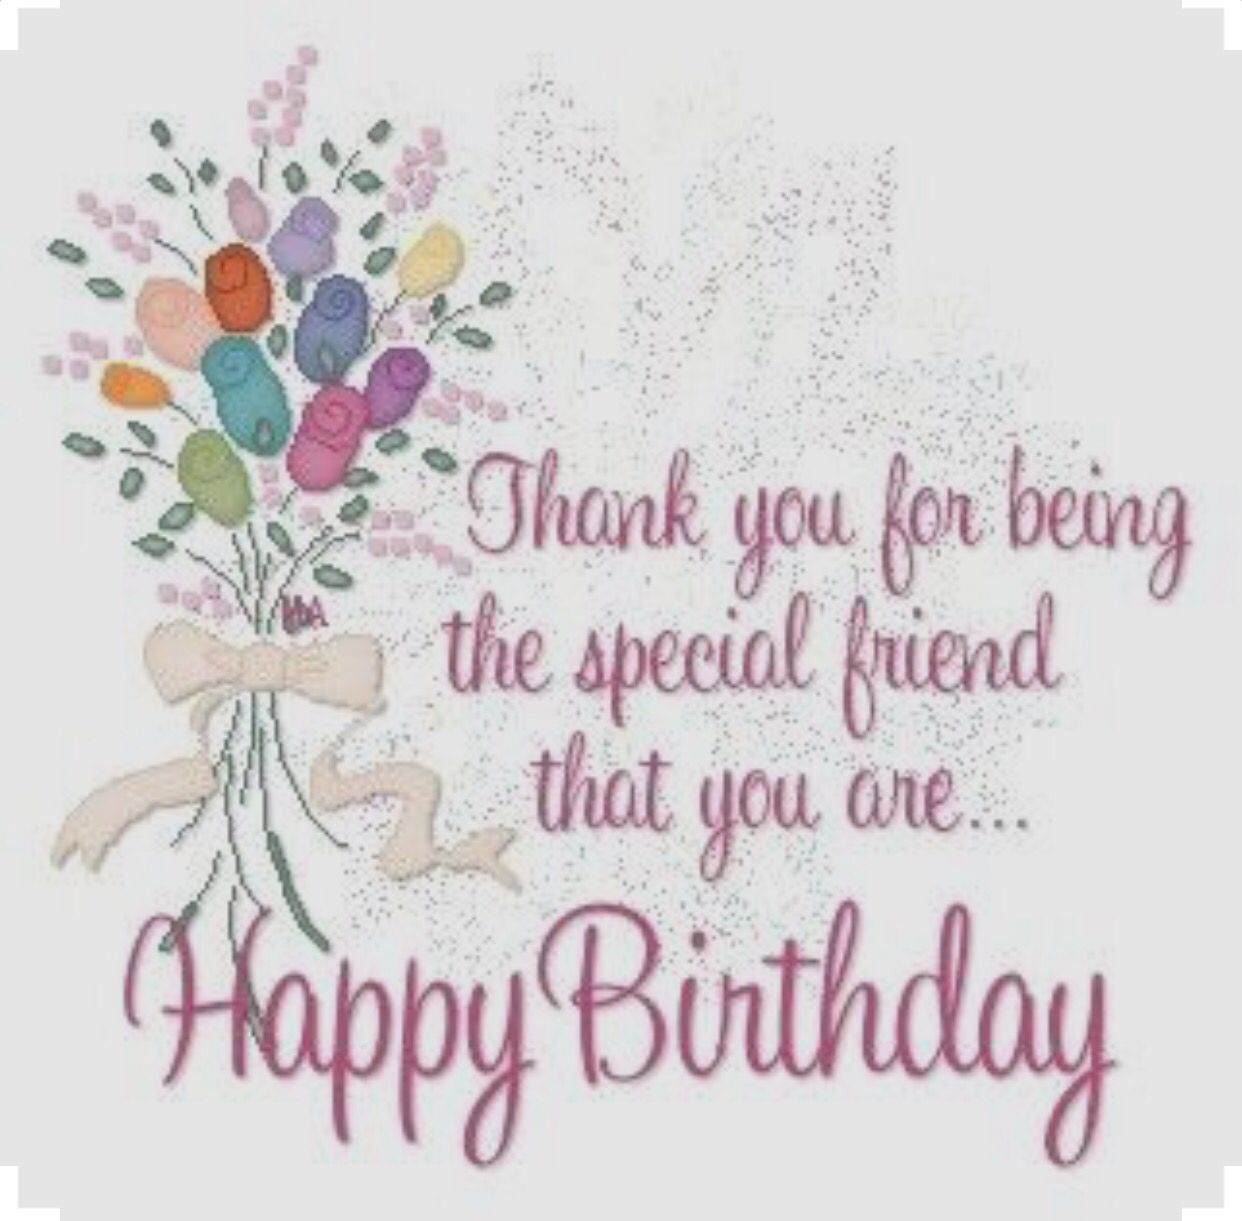 Hb special friend a bit of everything d pinterest explore short birthday wishes and more bookmarktalkfo Choice Image